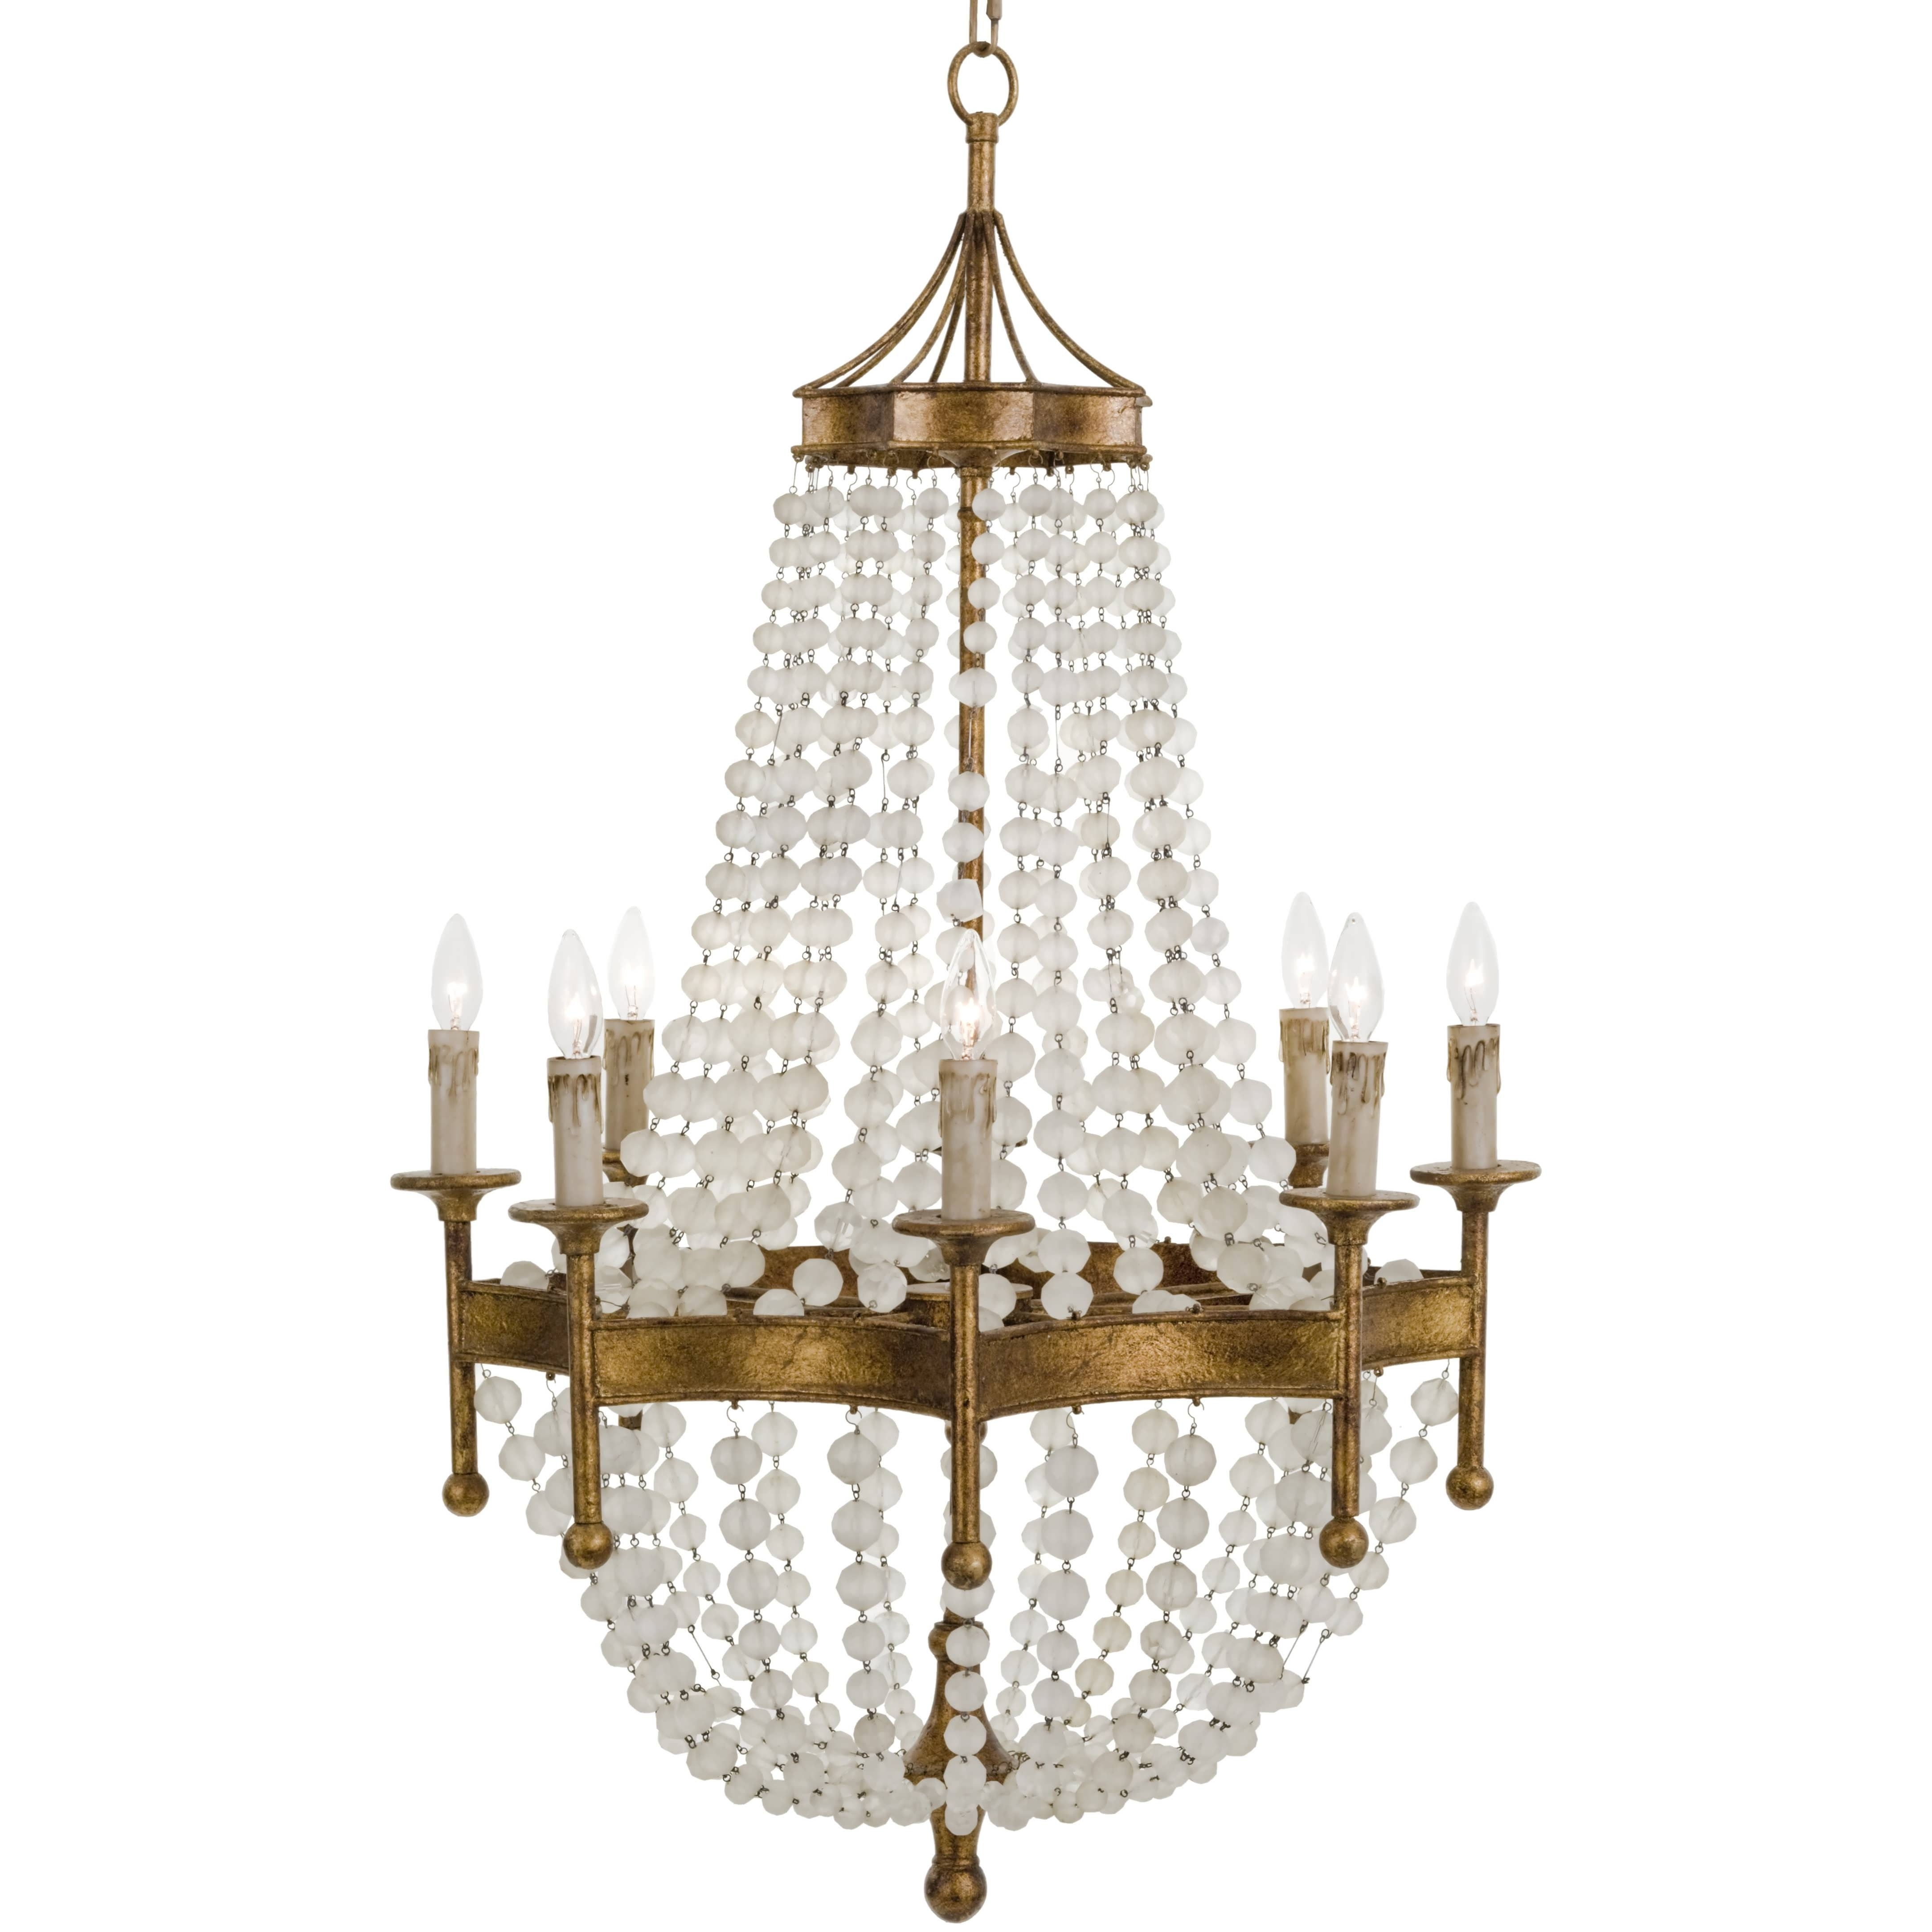 Well Known Small Turquoise Beaded Chandeliers Throughout Chandelier : Beaded Light Fixture Turquoise Beaded Chandelier (View 19 of 20)